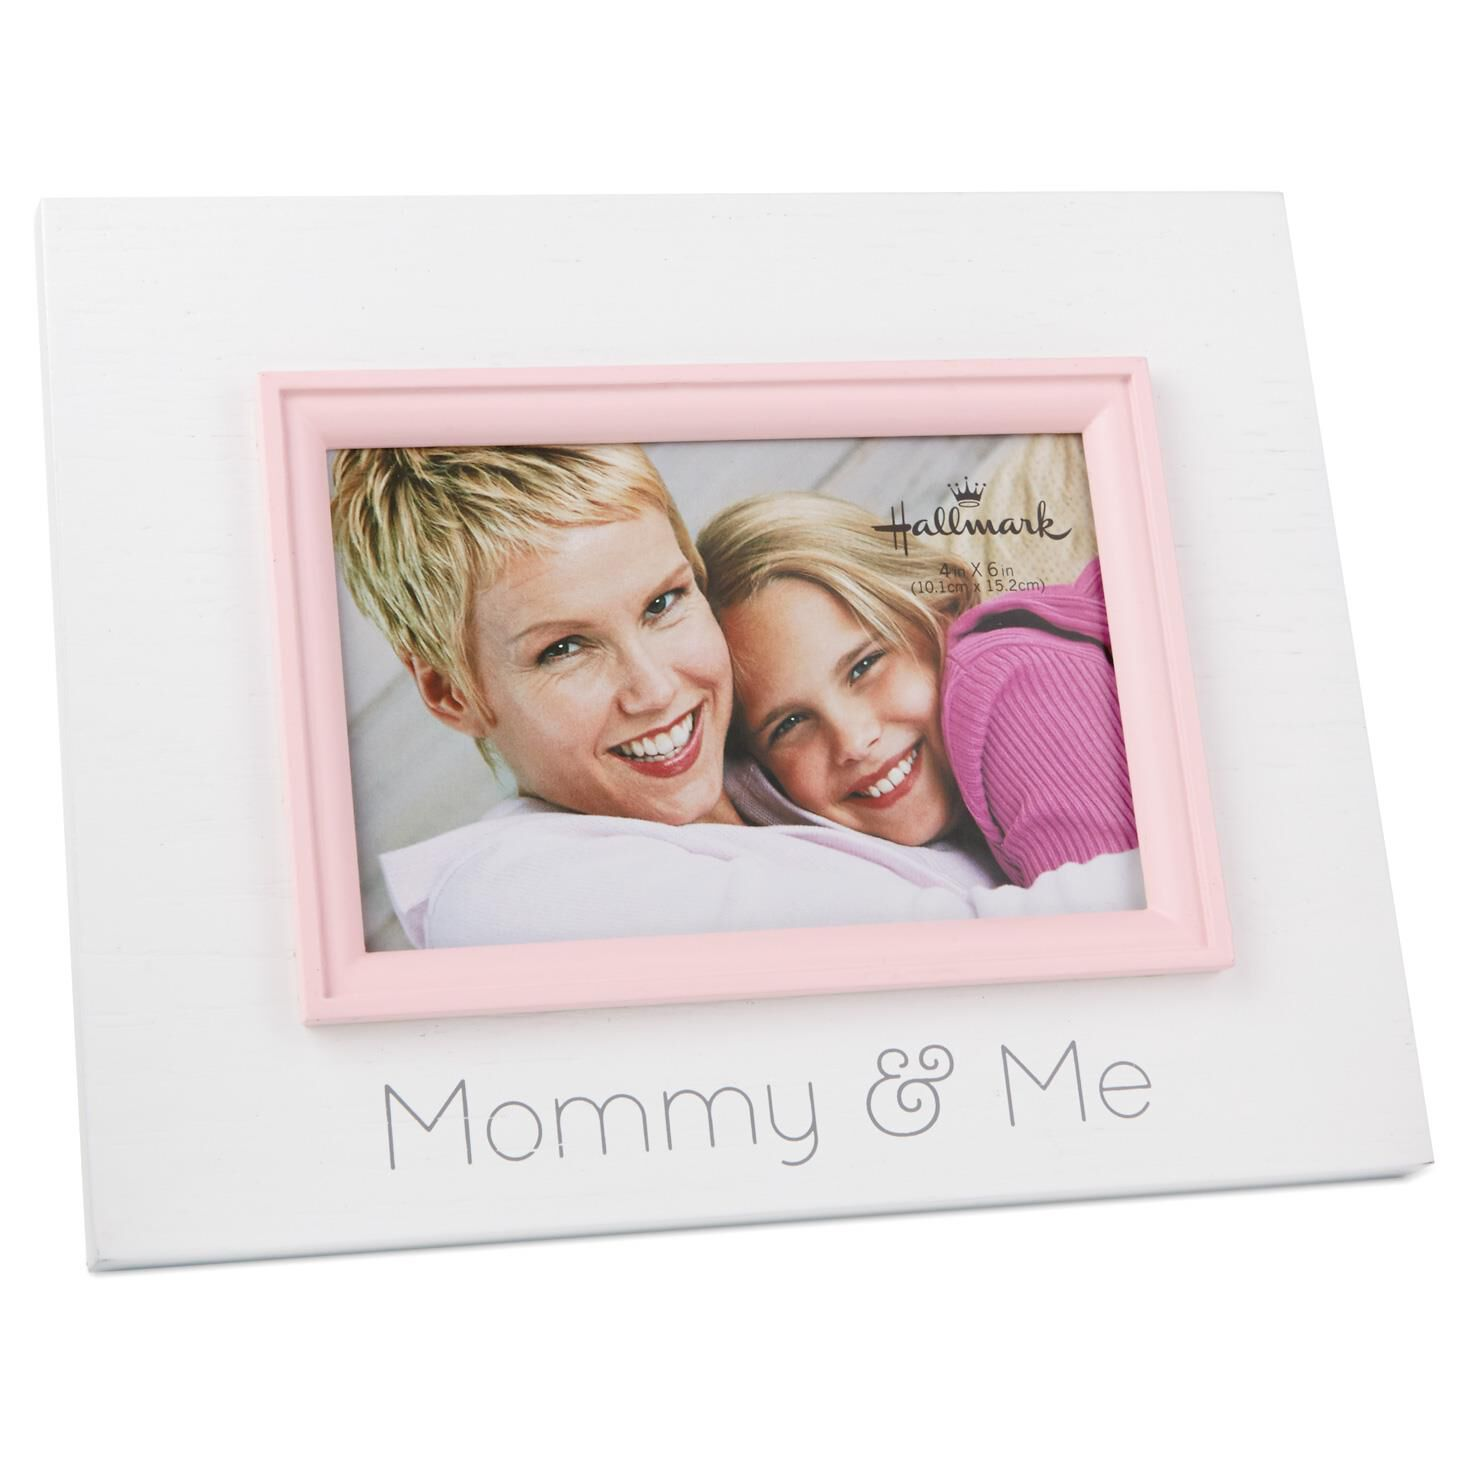 mommy and me wood photo frame 4x6